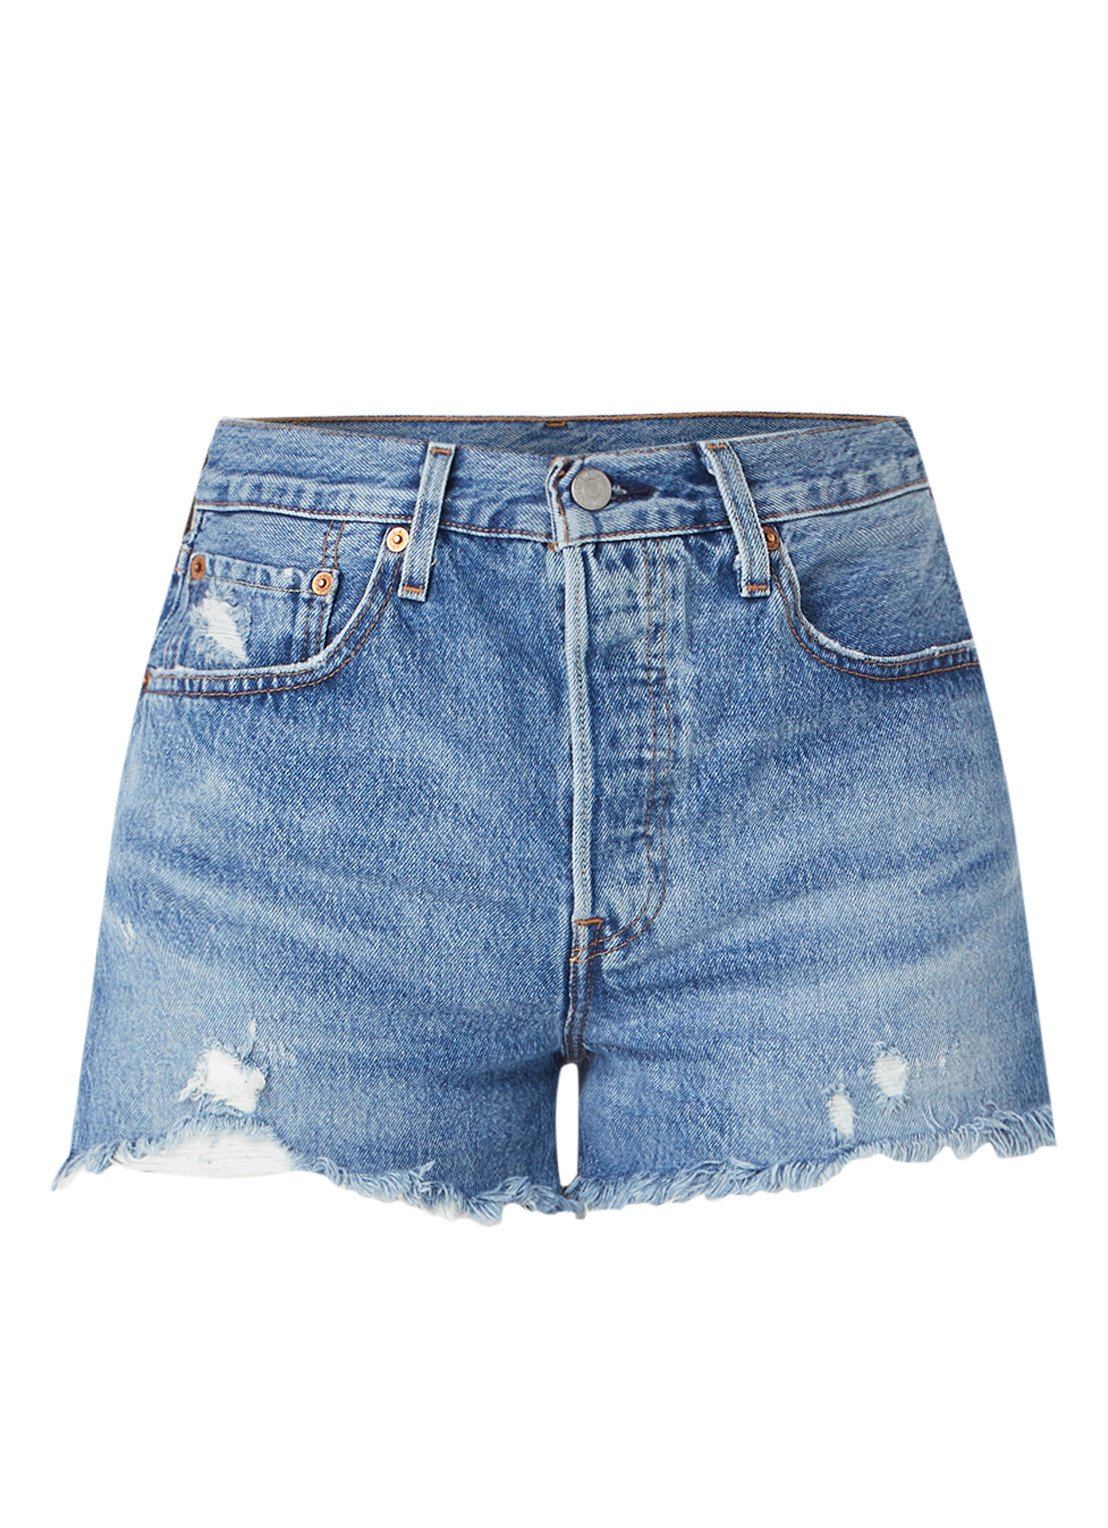 501 High waist jeans shorts met gerafelde zoom